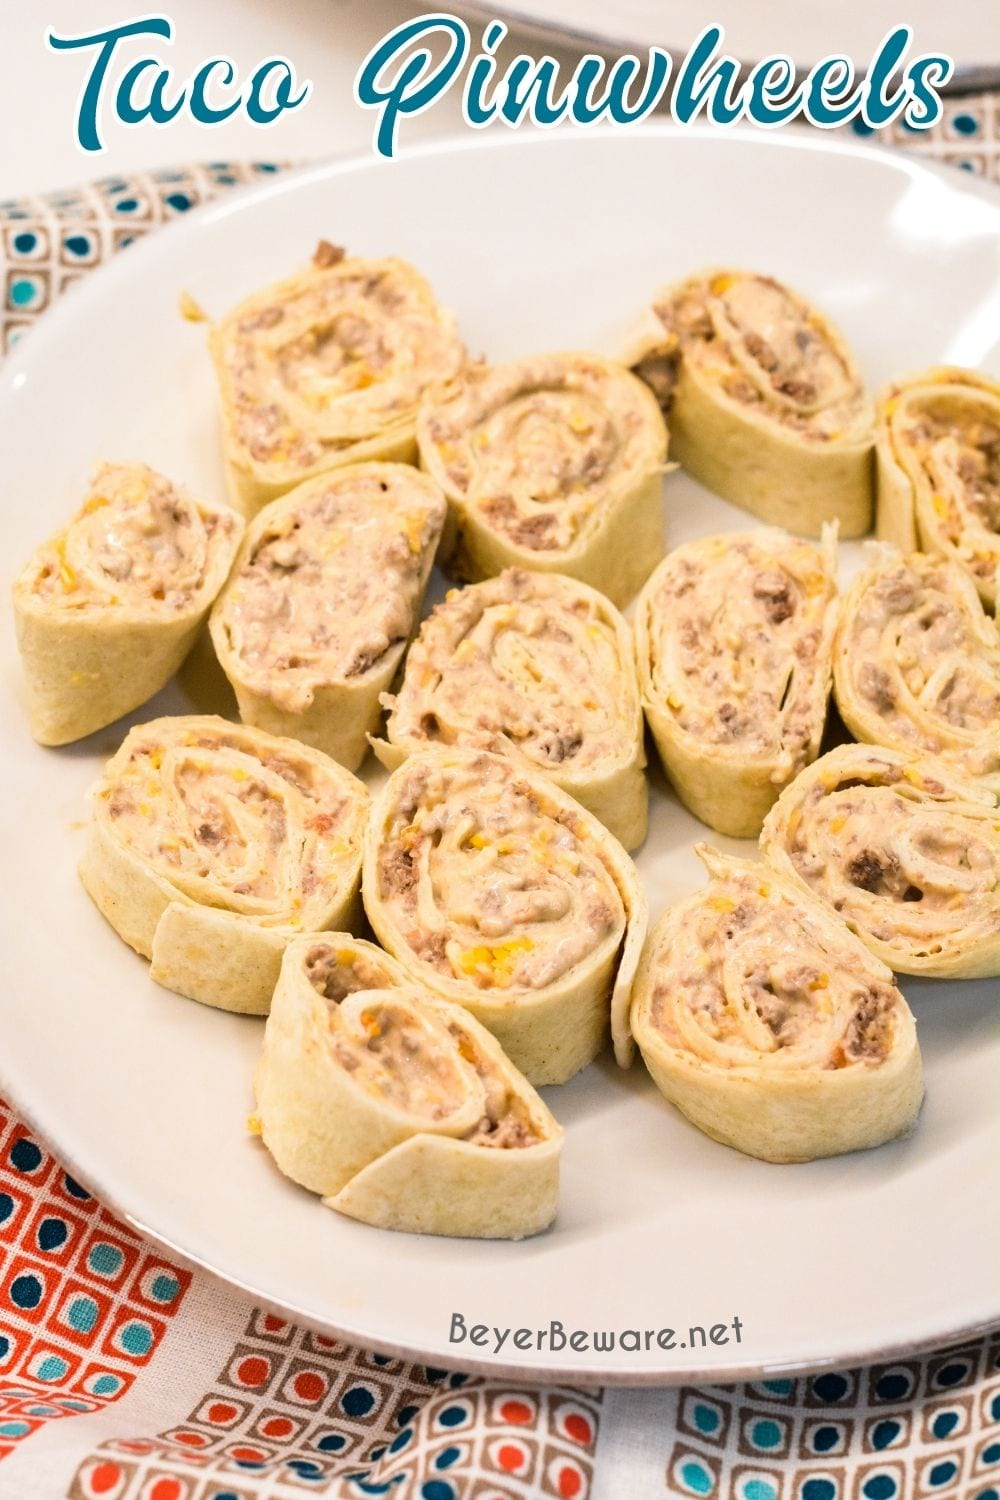 Taco pinwheels are the perfect way to use up leftover taco meat and tortilla shells in a different way than just as tacos again by simply mixing cream cheese, salsa, and taco meat together and spreading over the tortilla shell before rolling up into a pinwheel.